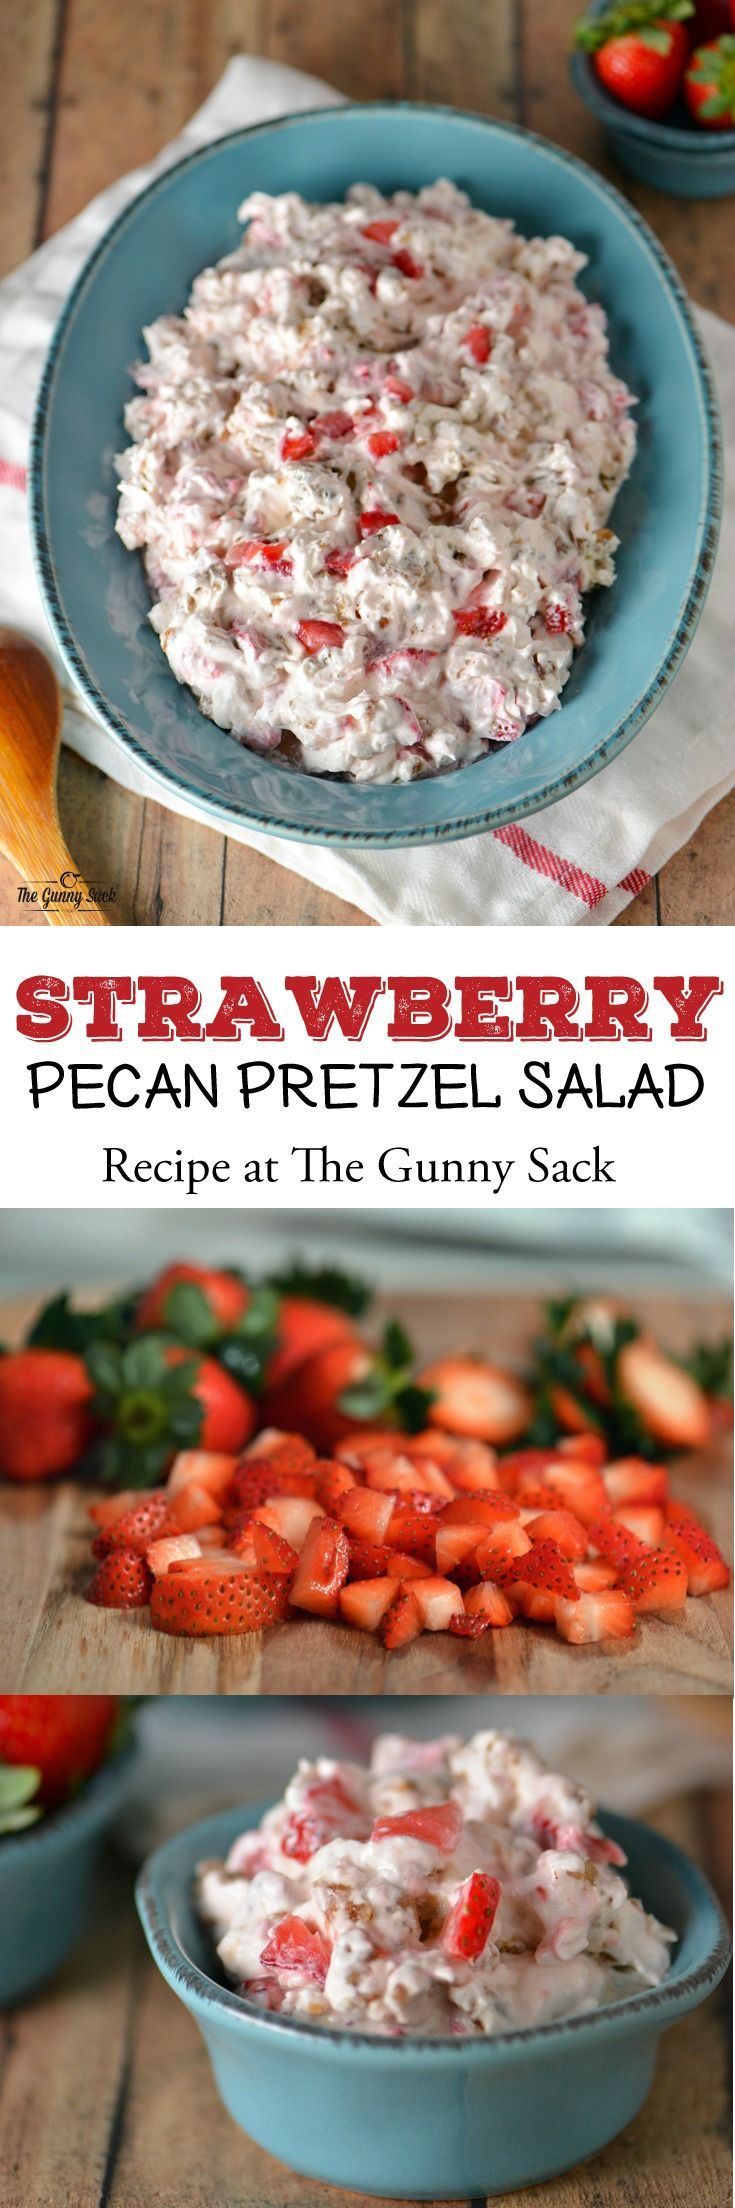 This Strawberry Pecan Pretzel Salad is a MUST at all of our holiday celebrations. Try sharing this recipe at your Thanksgiving or Christmas dinner!: